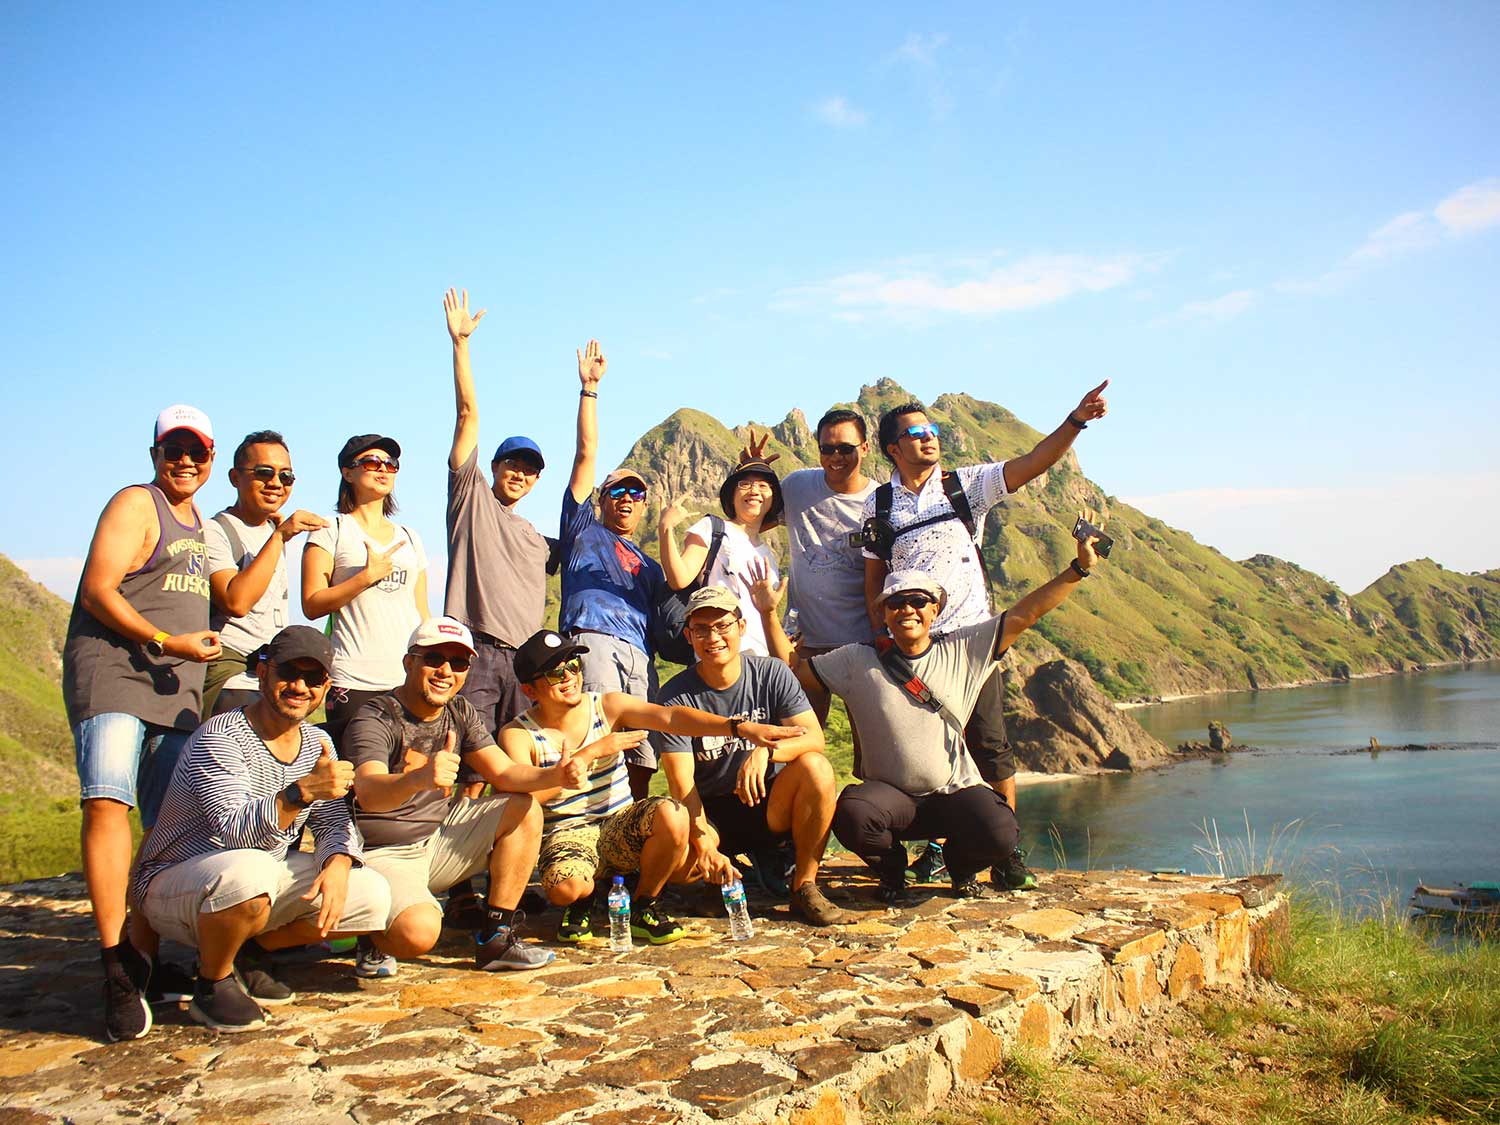 trip-team building-labuan bajo-sunset-ev